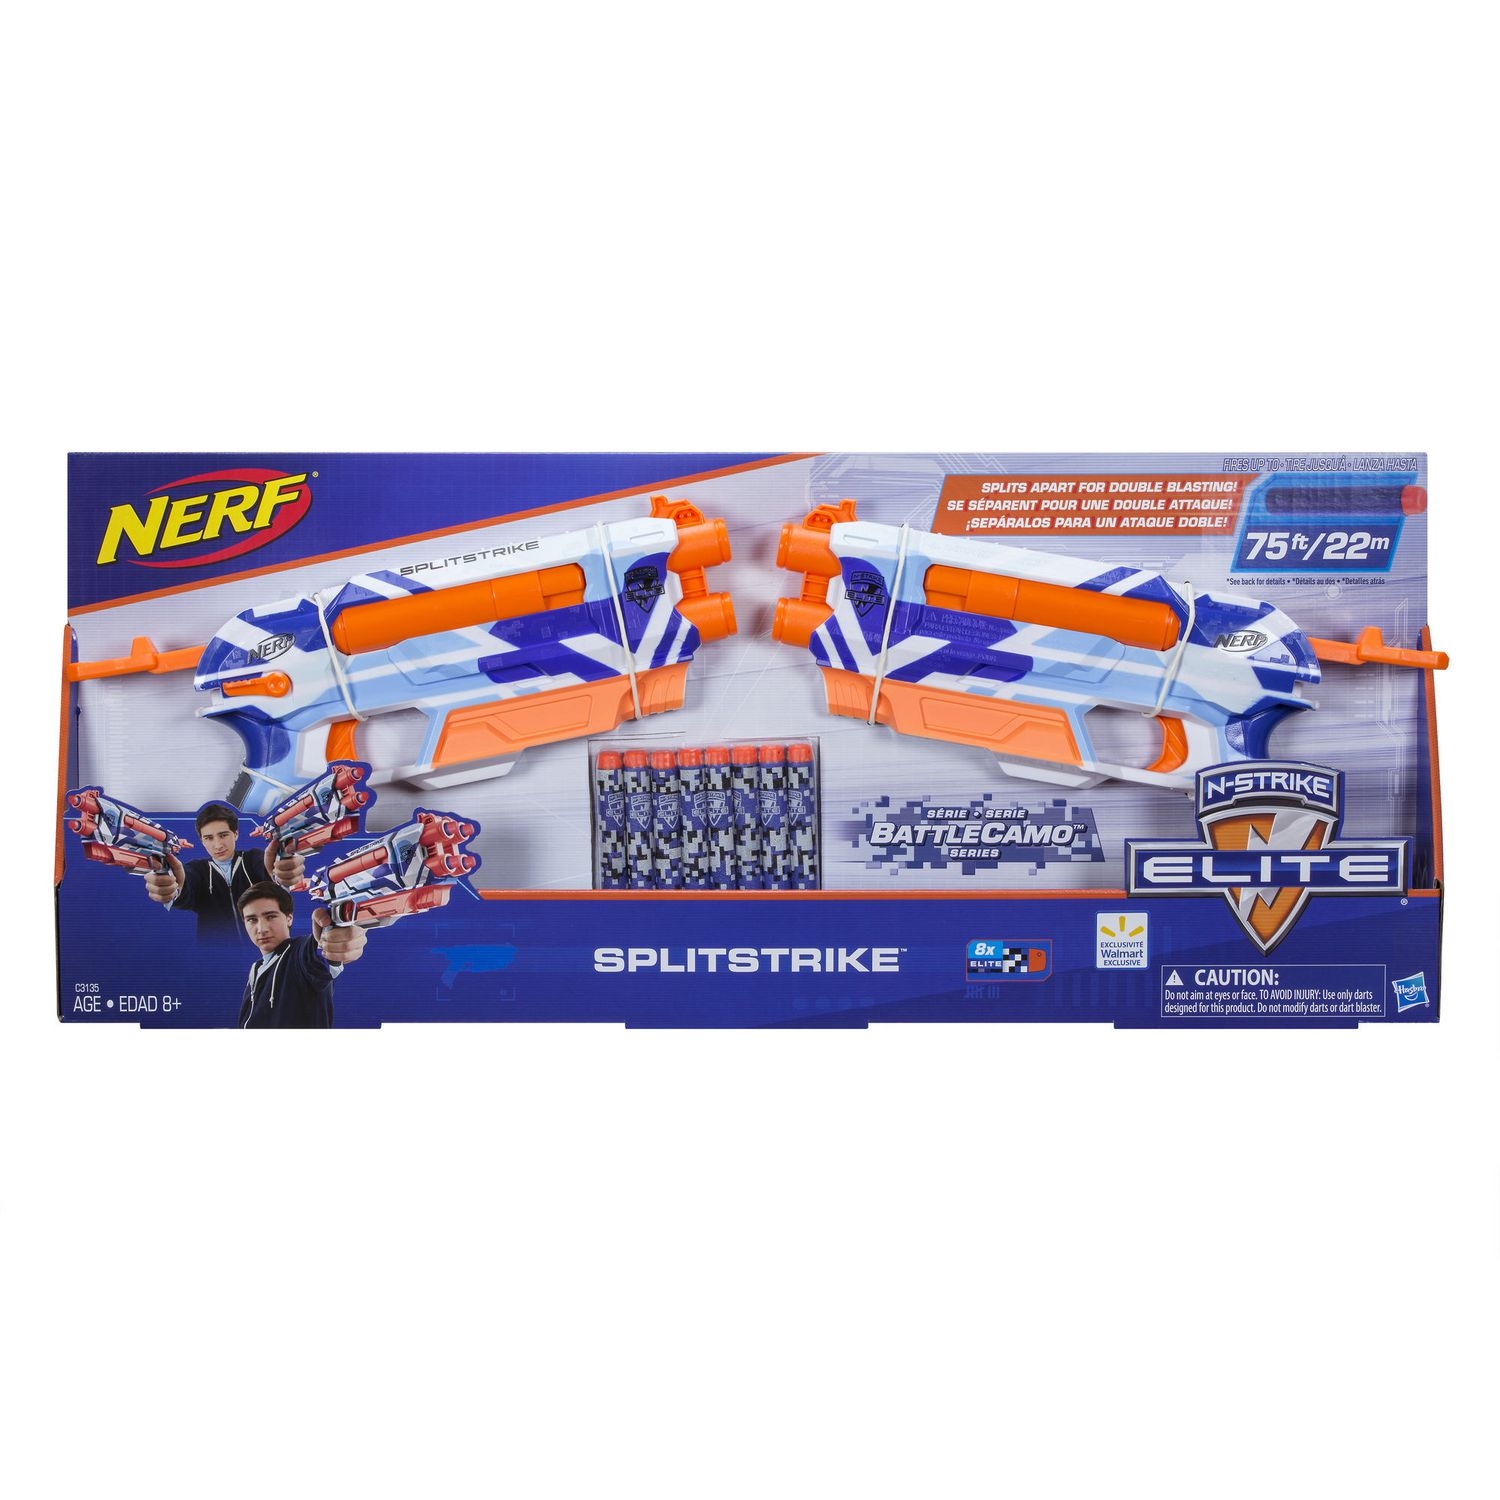 Nerf for slimming: reviews, properties, cautions